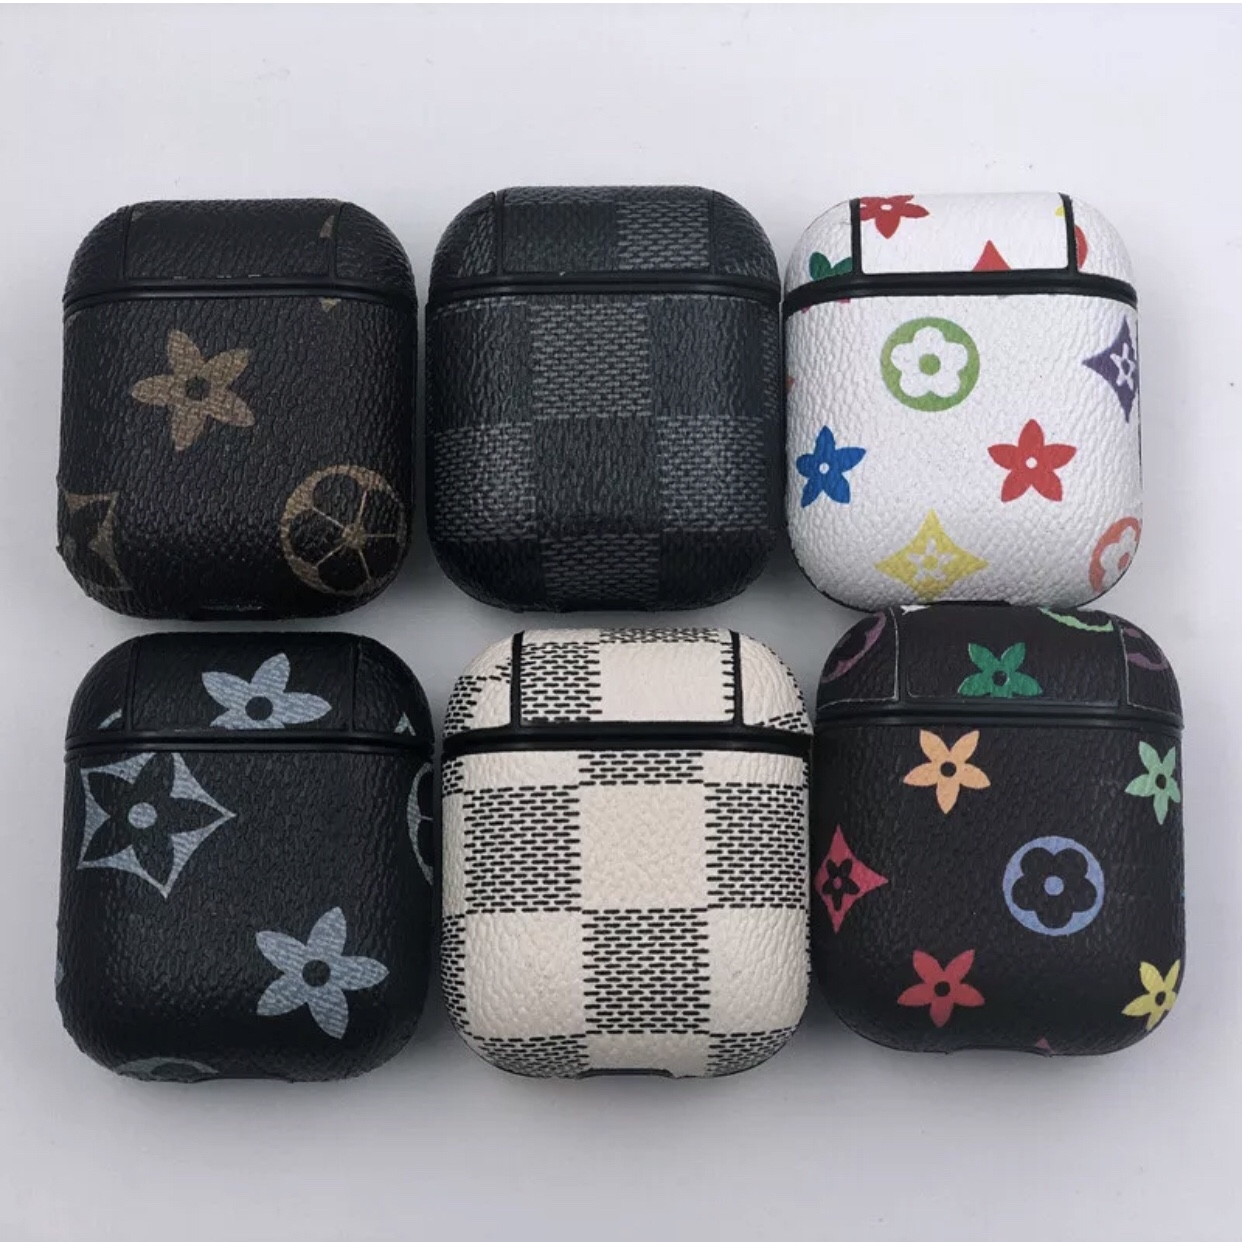 huge discount 6cddc 8eb1a AirPods case! Designer! Brand new! So many... - Depop